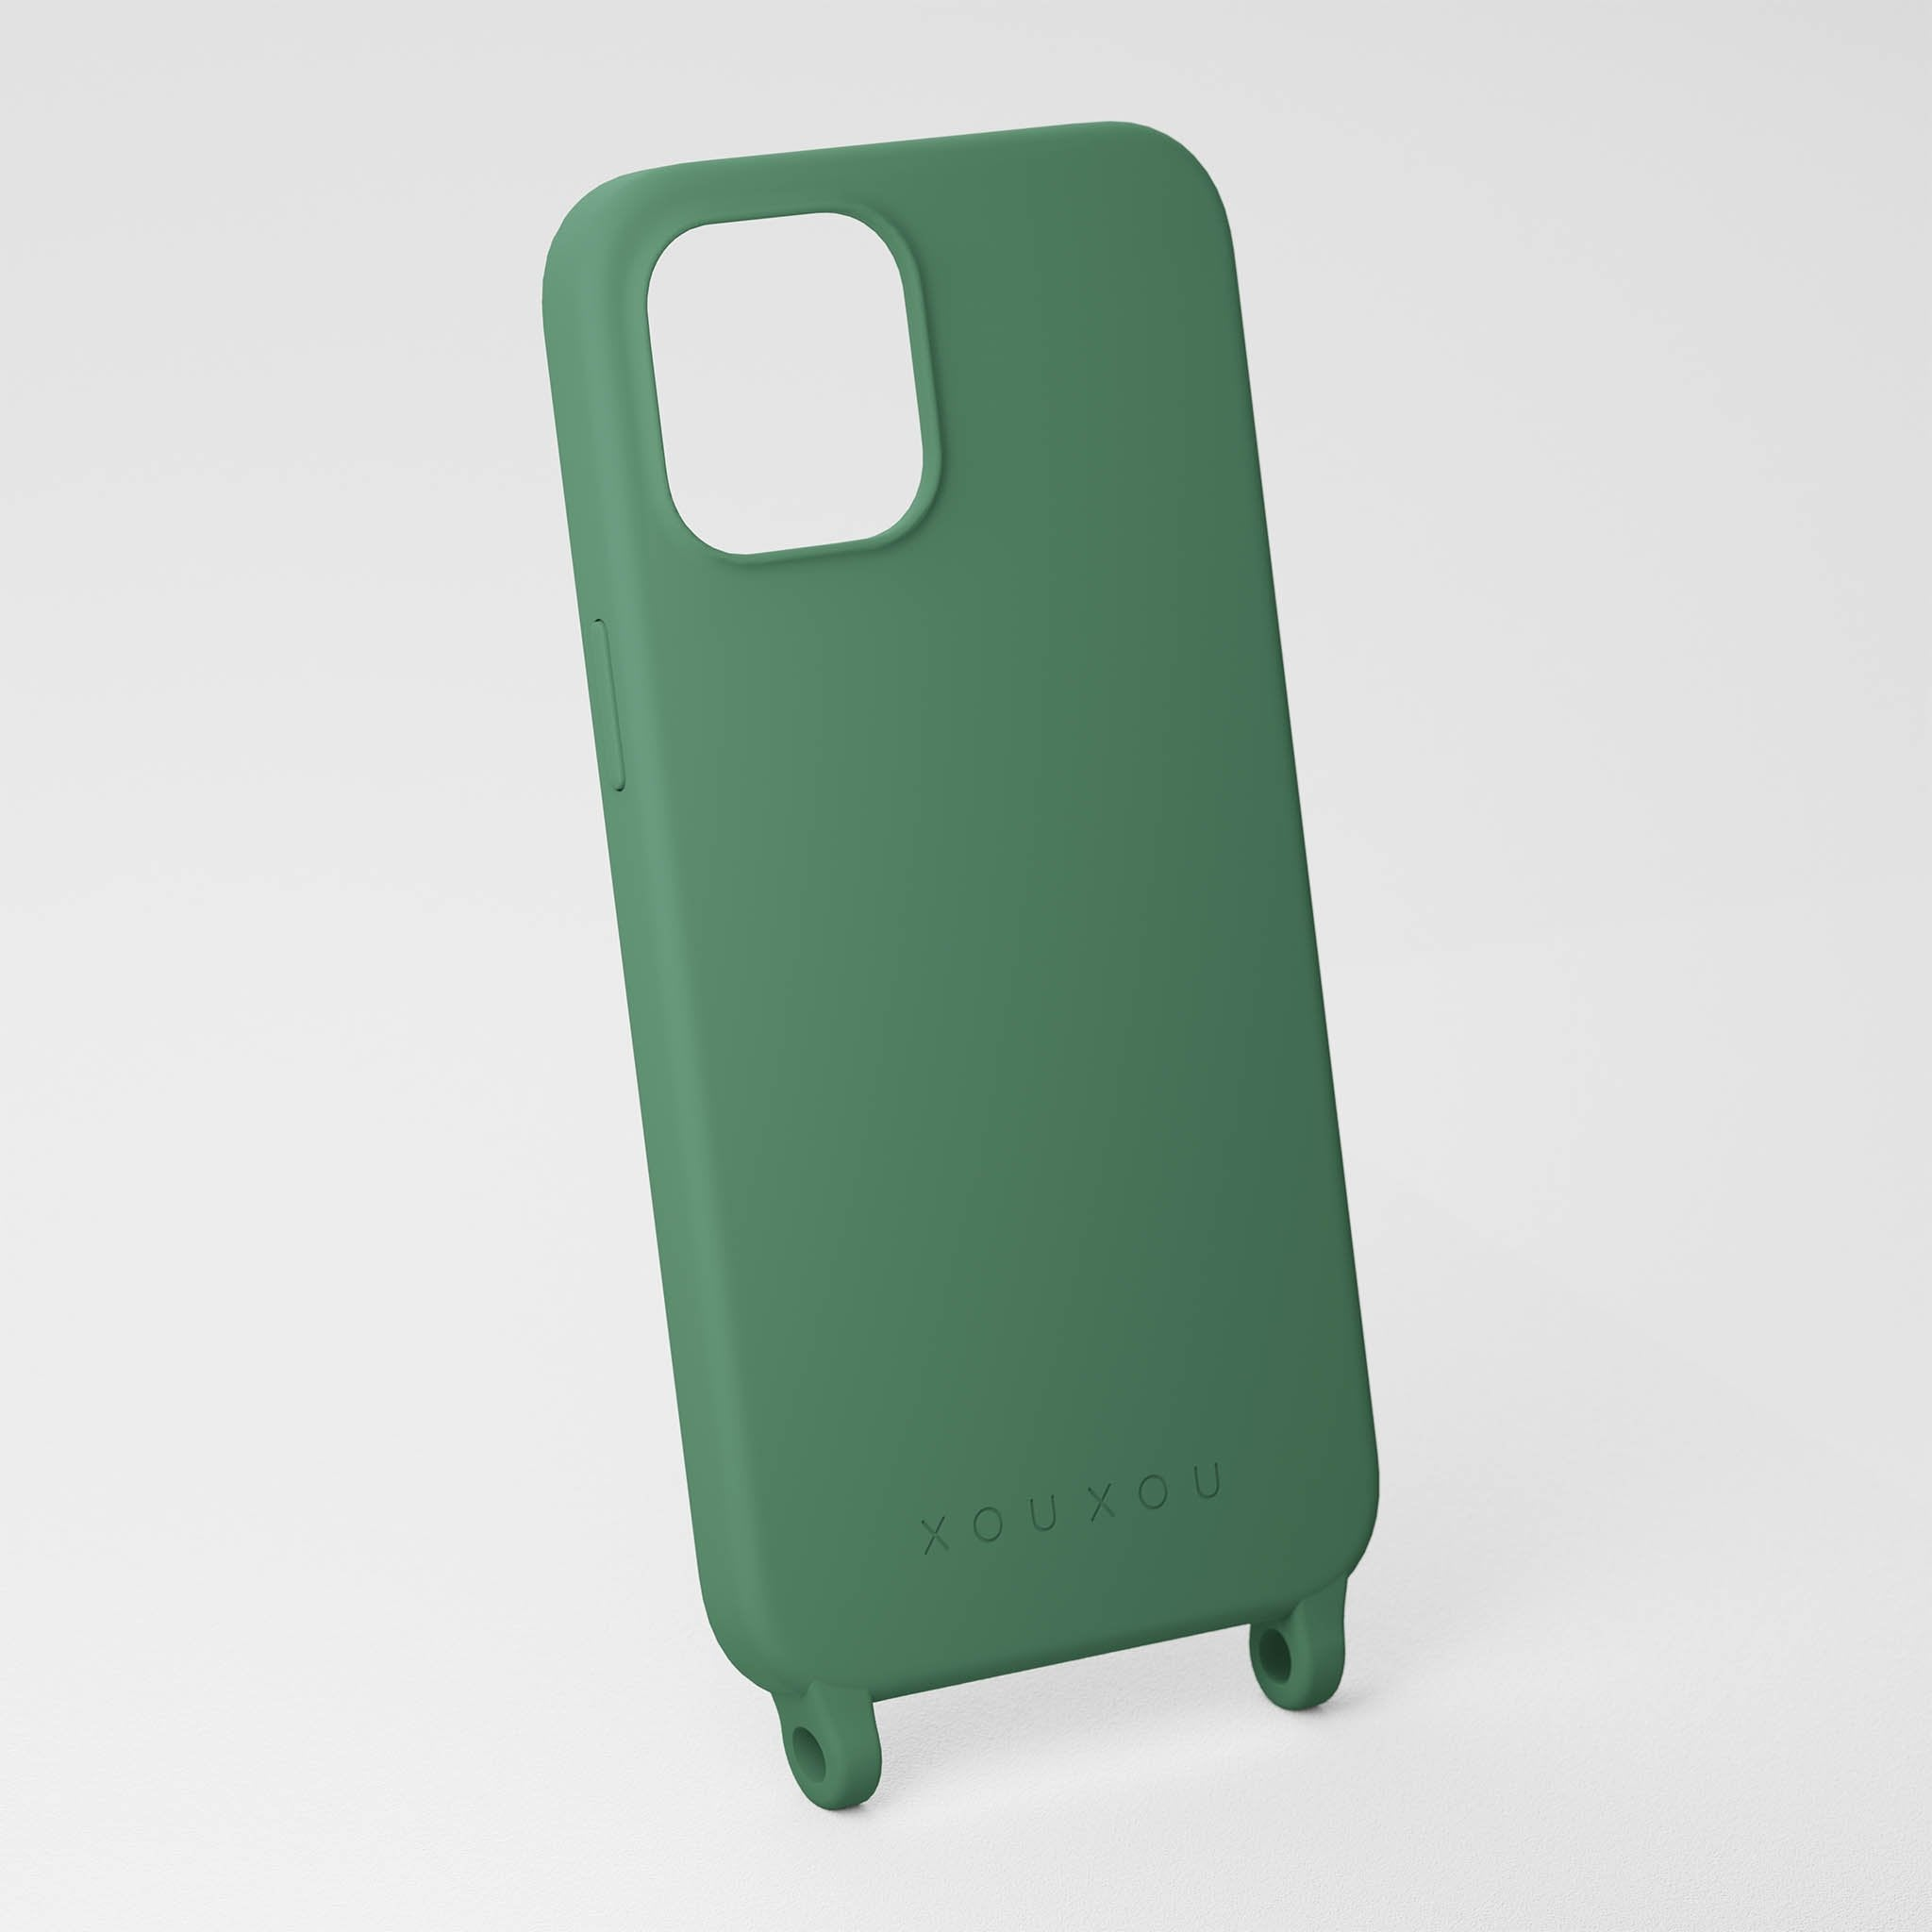 Sage Green silicone phone case by XOUXOU